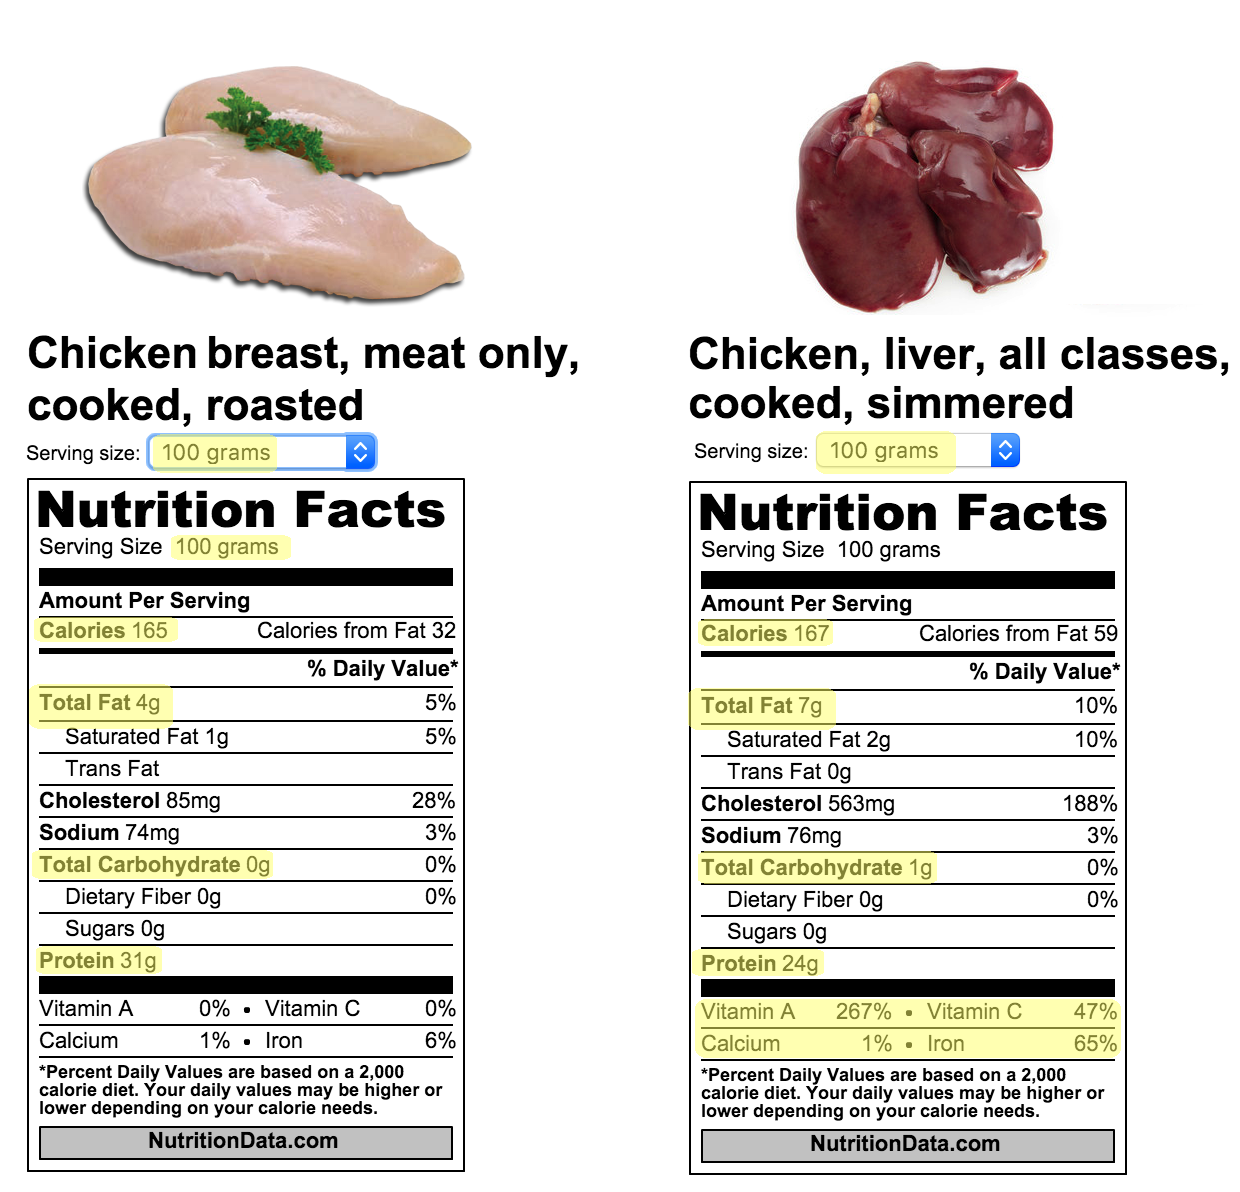 Chicken breast nutrition facts per 100g